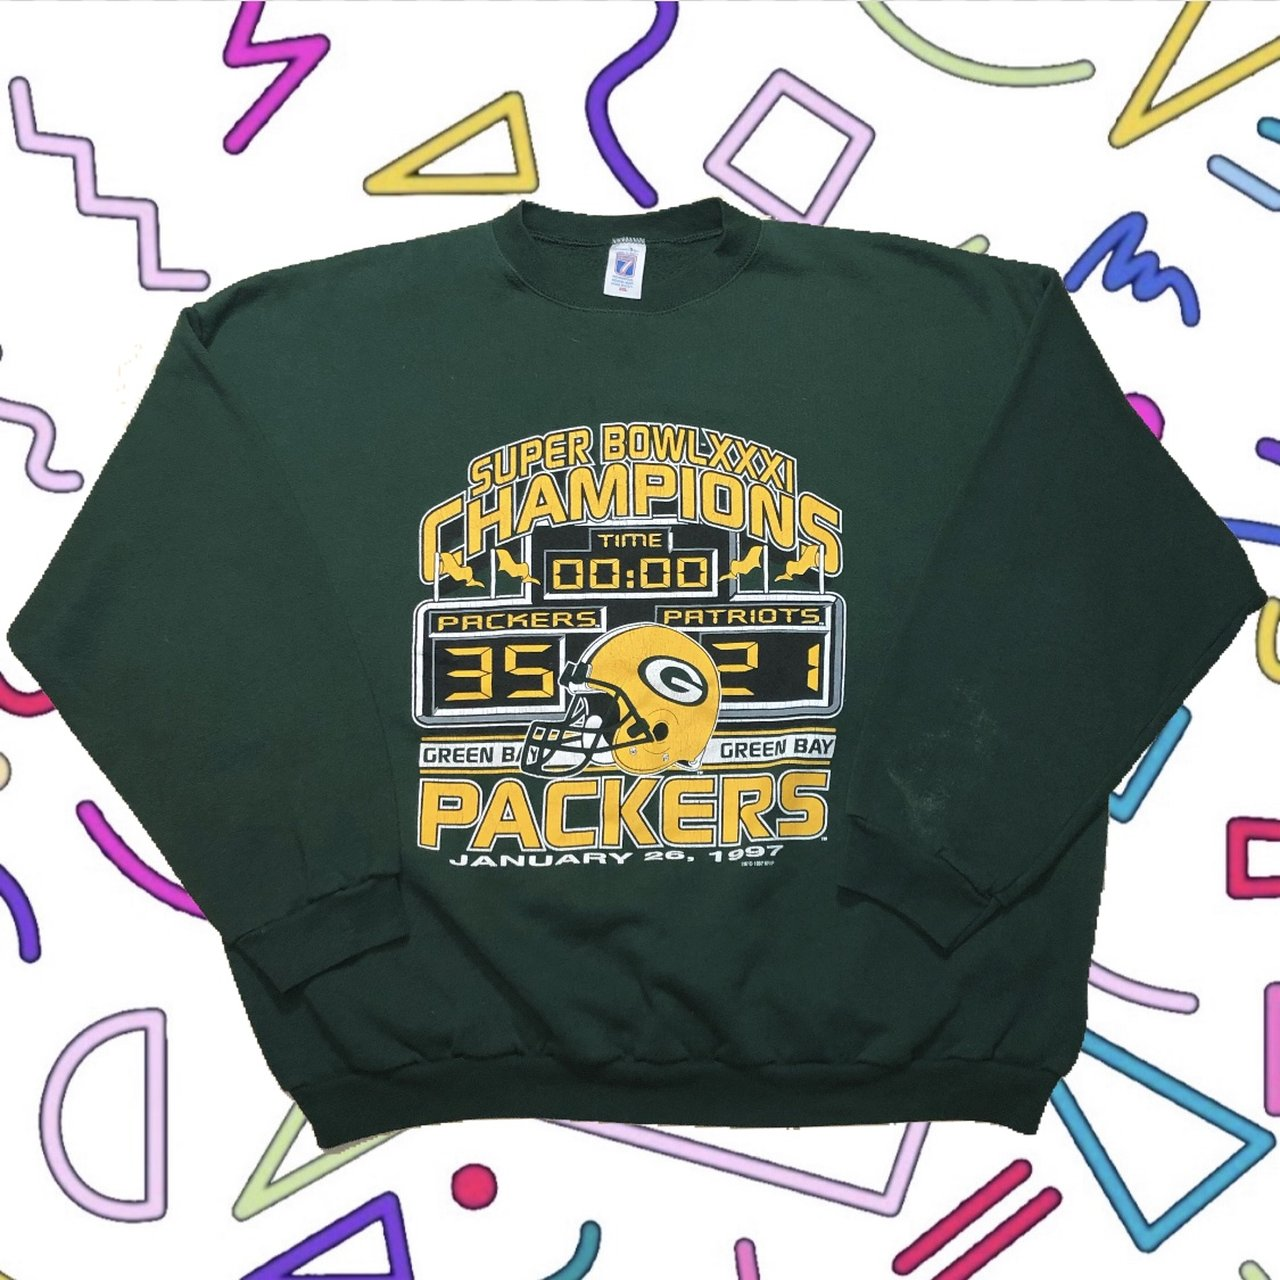 e222c51e2 🔔 Vintage 1997 Super Bowl XXXI Green Bay Packers   New From - Depop